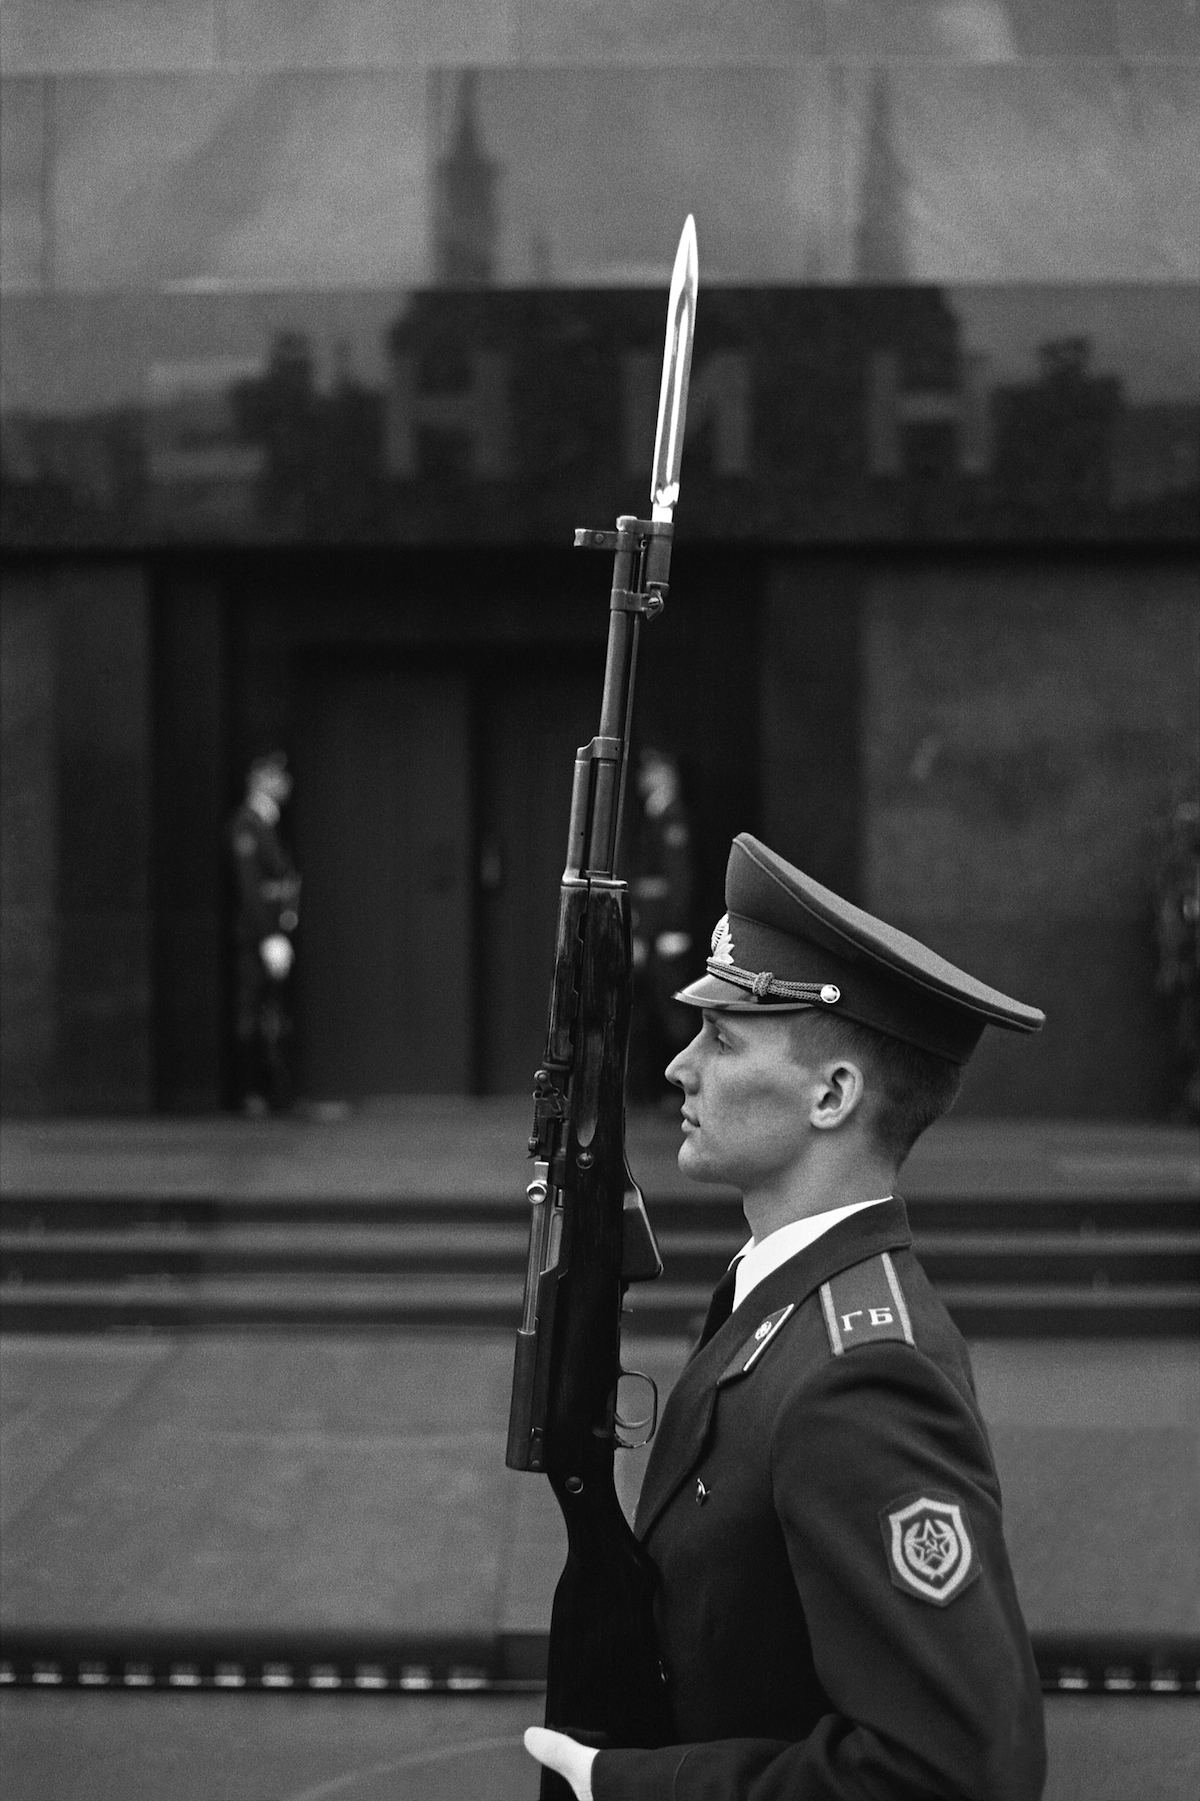 The guard on the Red Square